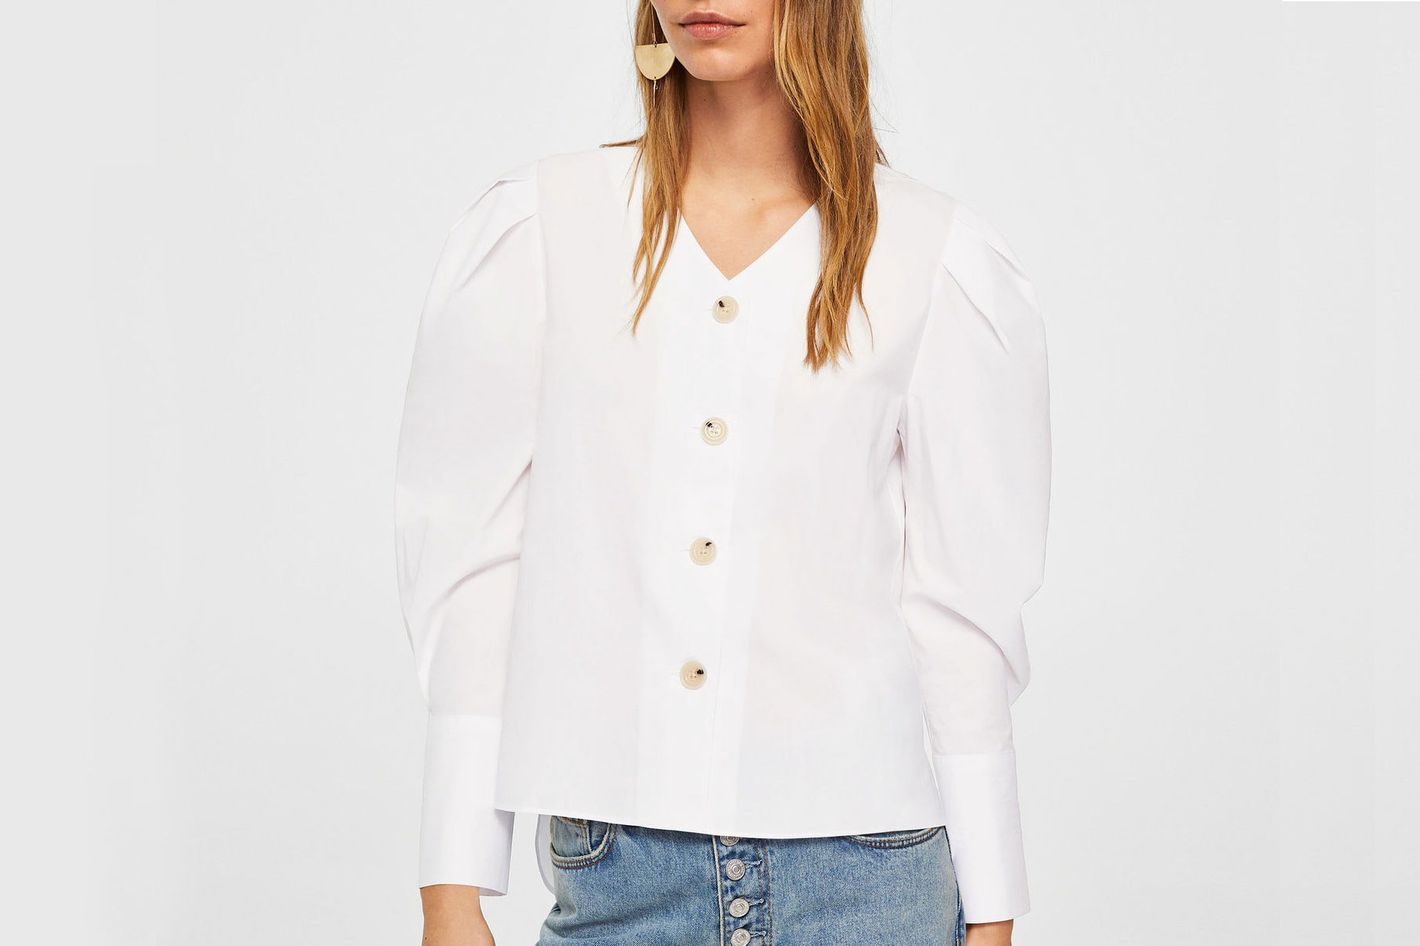 c3b27a6dd07de 10 White Shirts for Women to Wear to Work